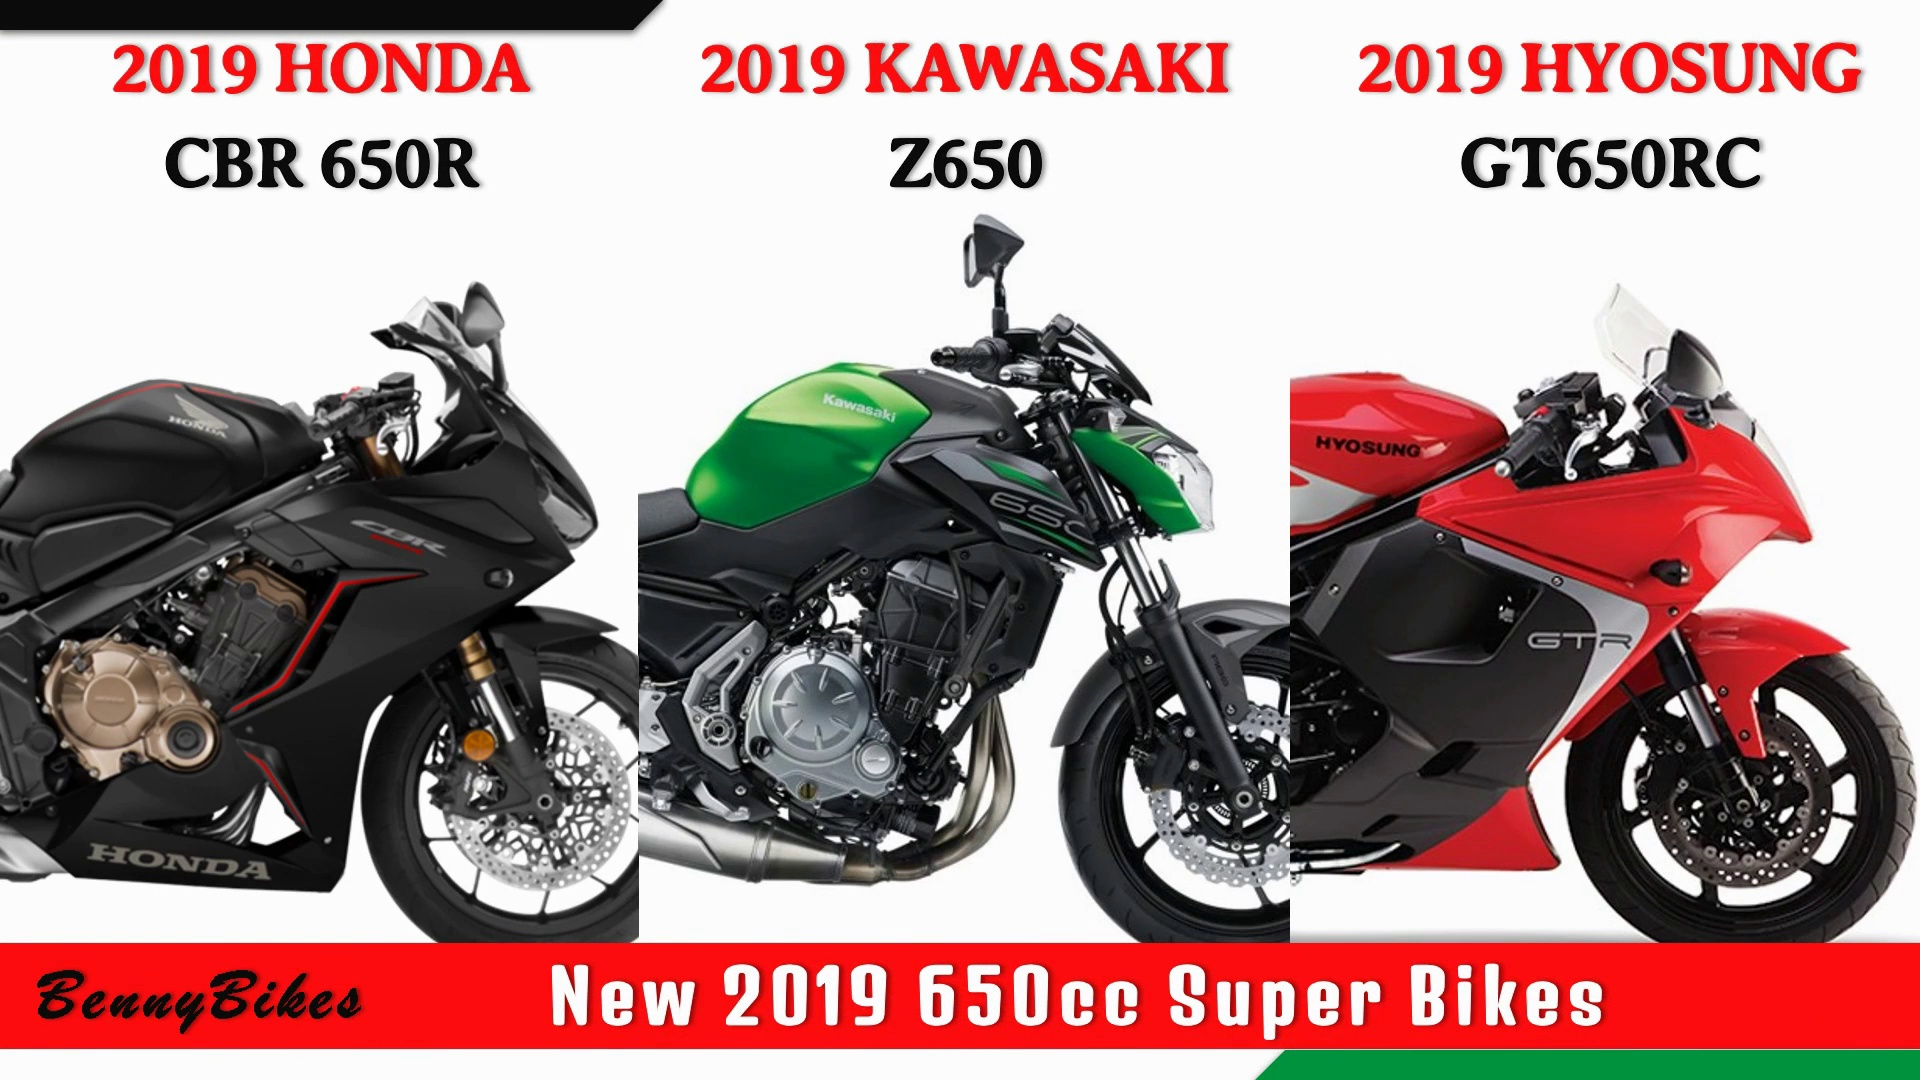 2019 All New Honda CBR 650R VS New 2019 Kawasaki Z650 VS New 2019 Hyosung GT650RC